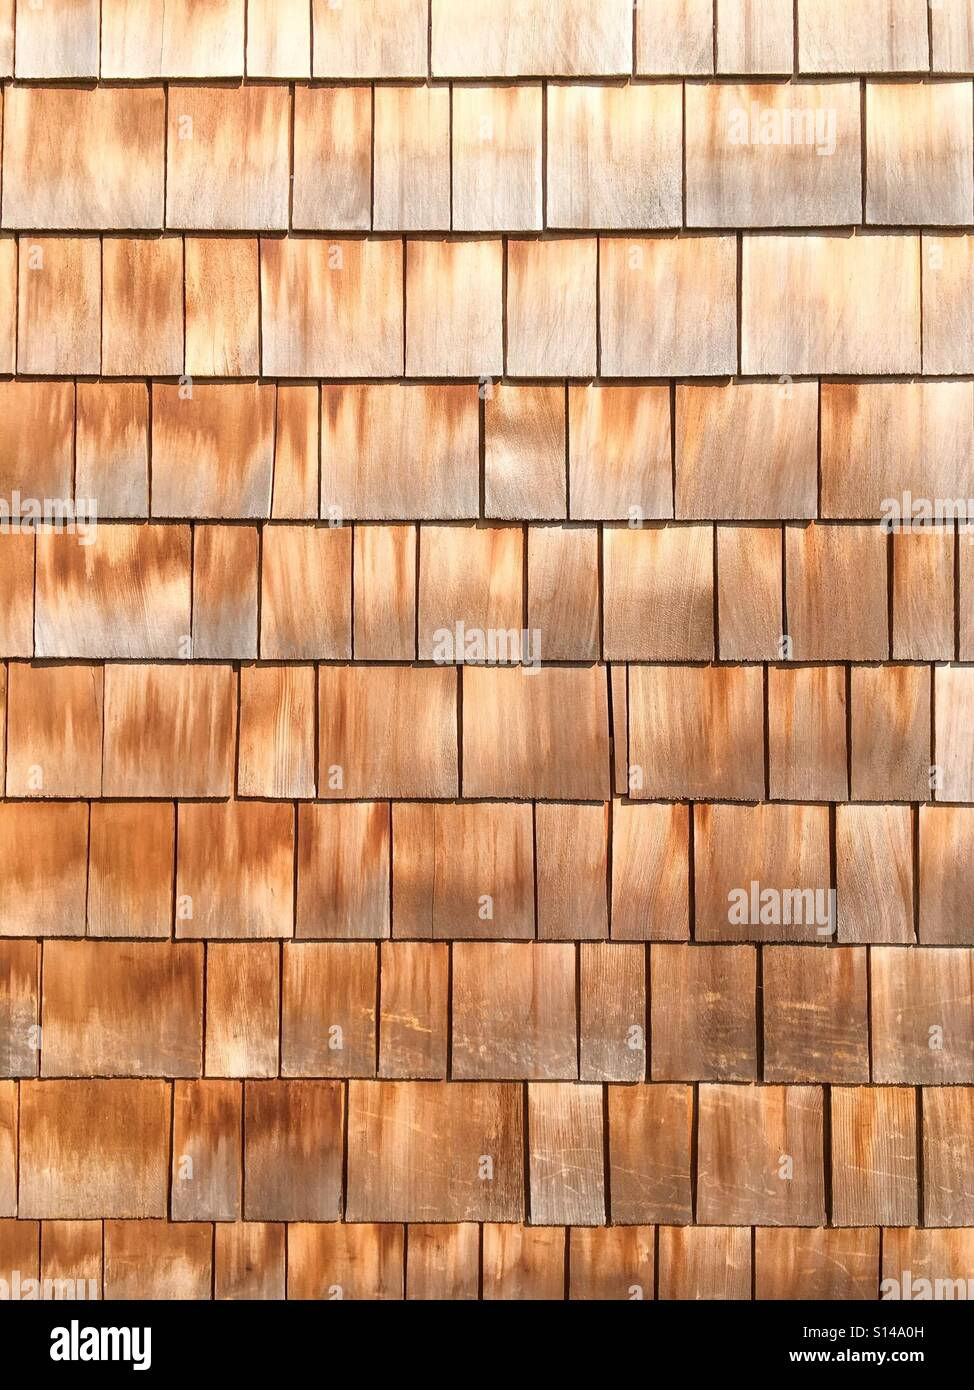 Wooden wall drom planks. - Stock Image